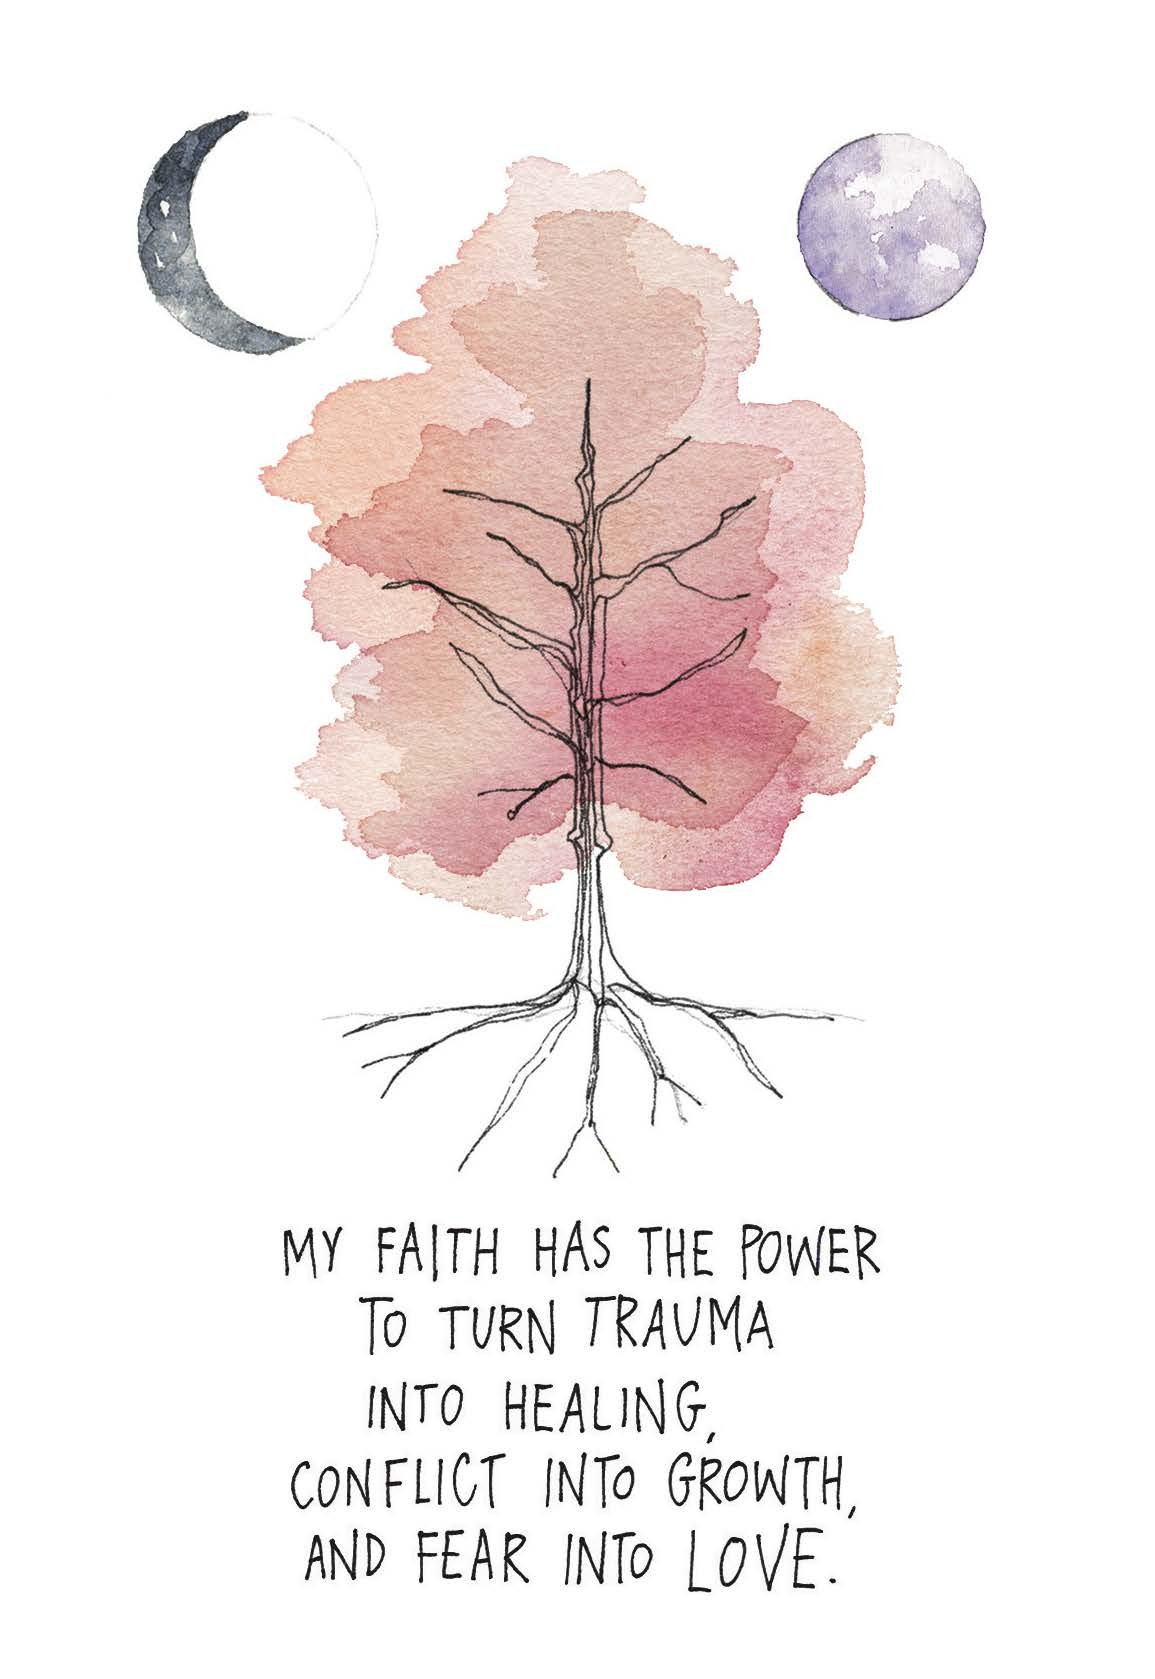 My faith has the power to turn trauma into healing, conflict into growth, and fear into love. | Gabby Bernstein | The Universe Has Your Back card deck